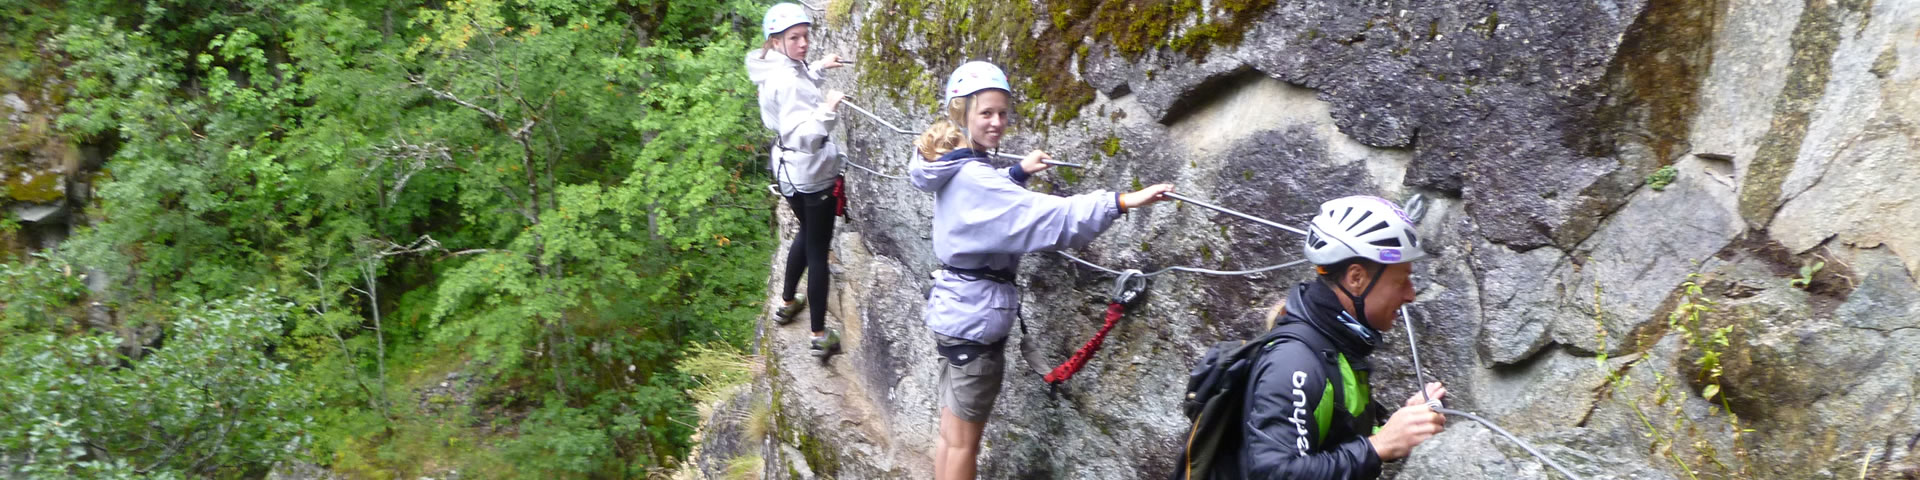 Activity courses in the Southern French Alps